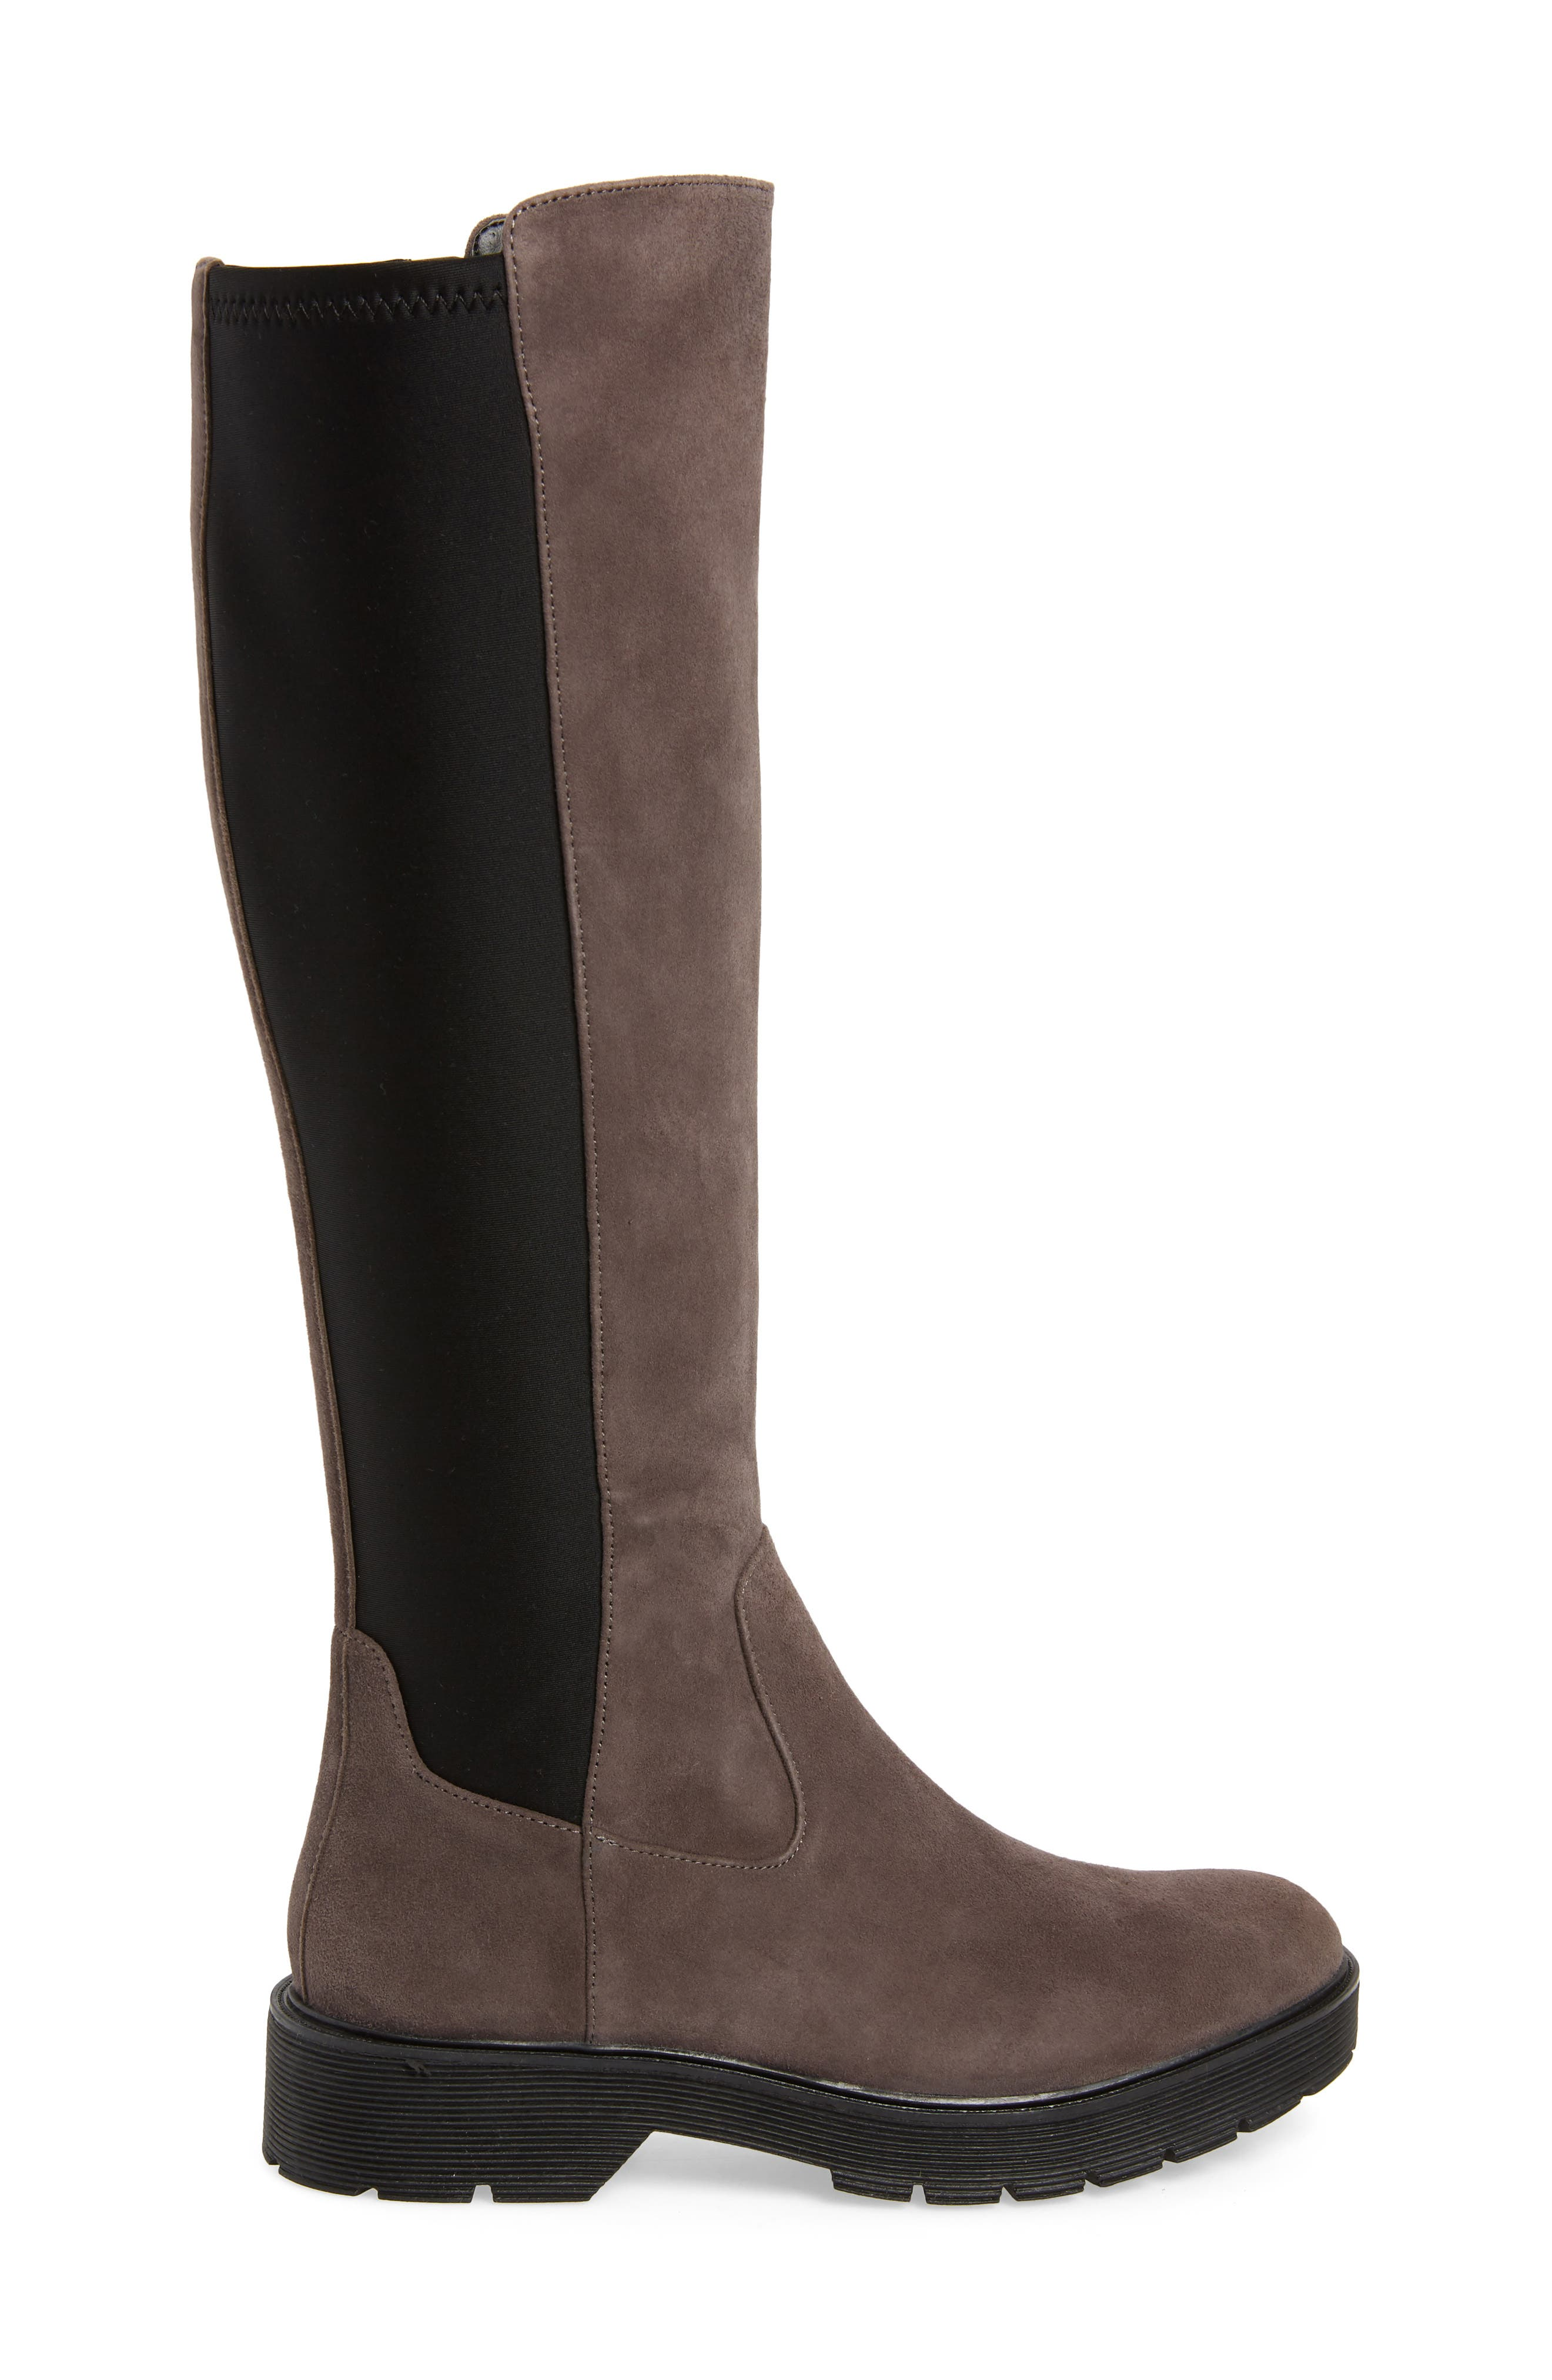 Themis Knee High Riding Boot,                             Alternate thumbnail 3, color,                             DARK UTILITY/ BLACK SUEDE